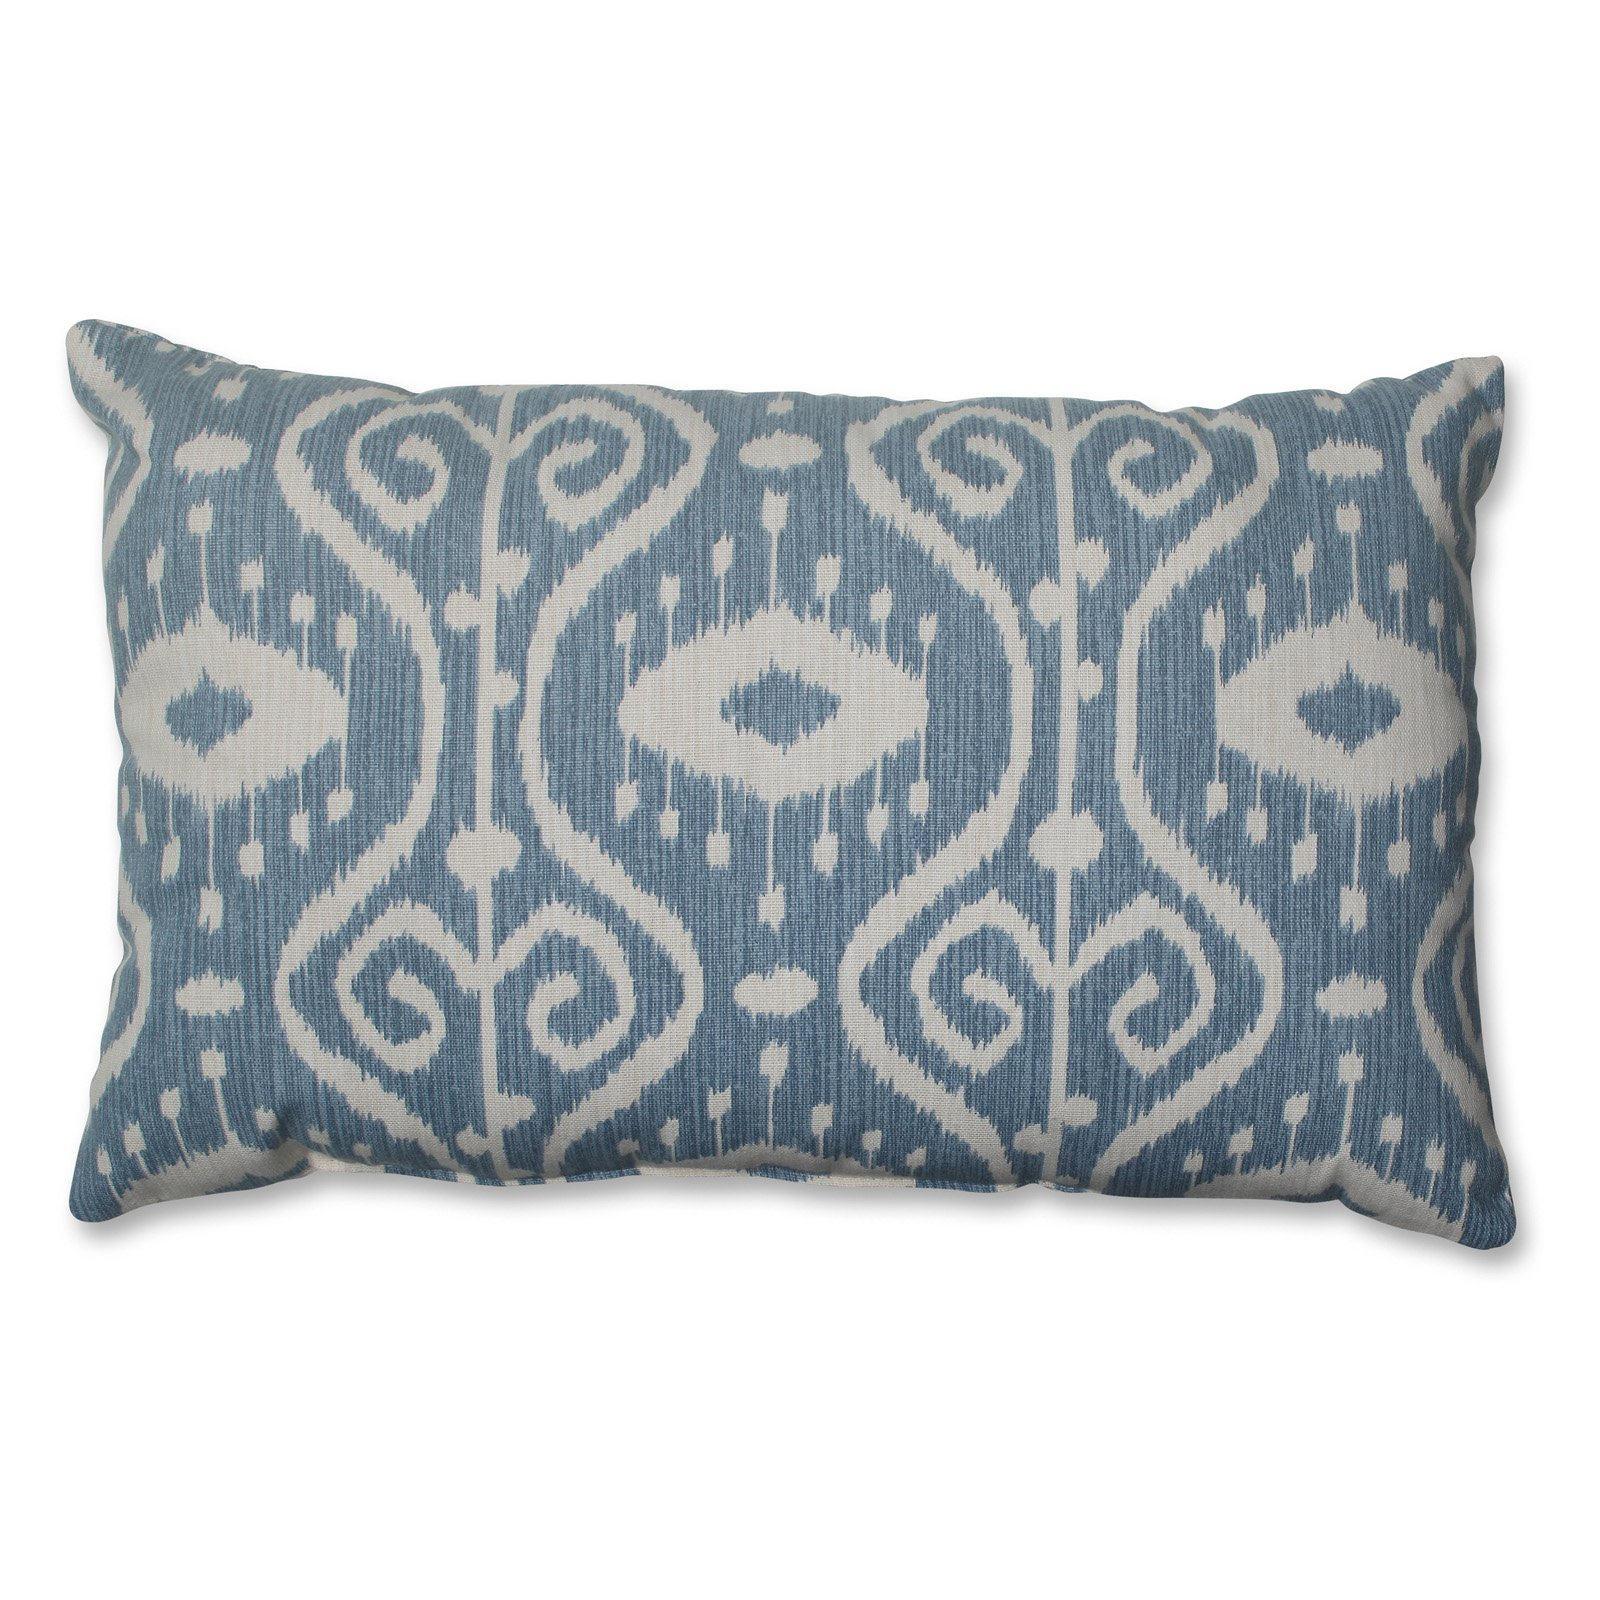 Pillow Perfect Empire Yacht Throw Pillow